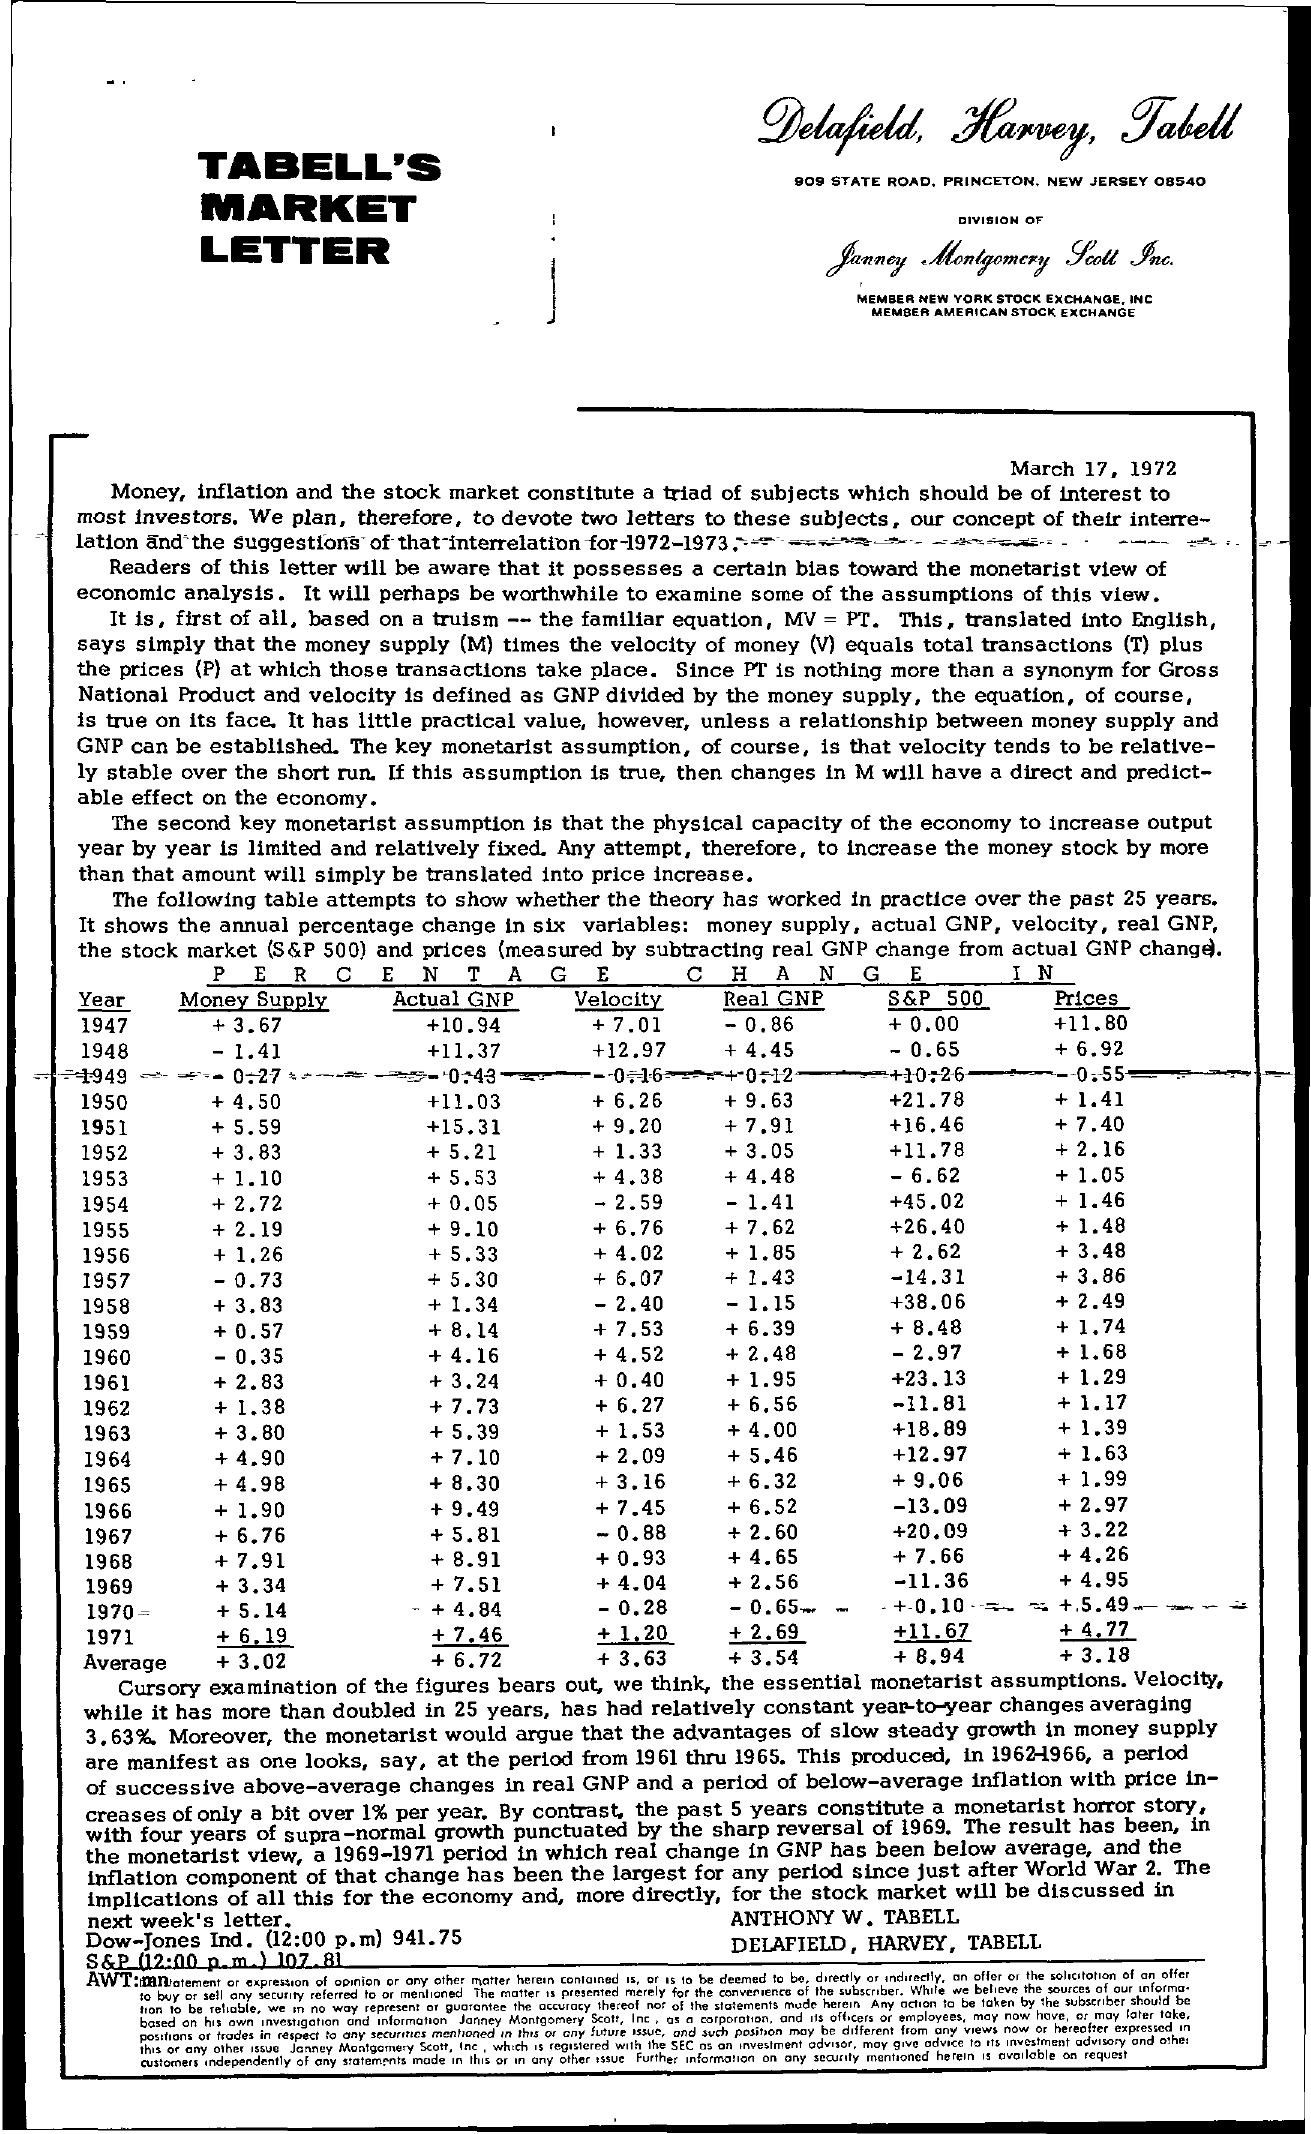 Tabell's Market Letter - March 17, 1972